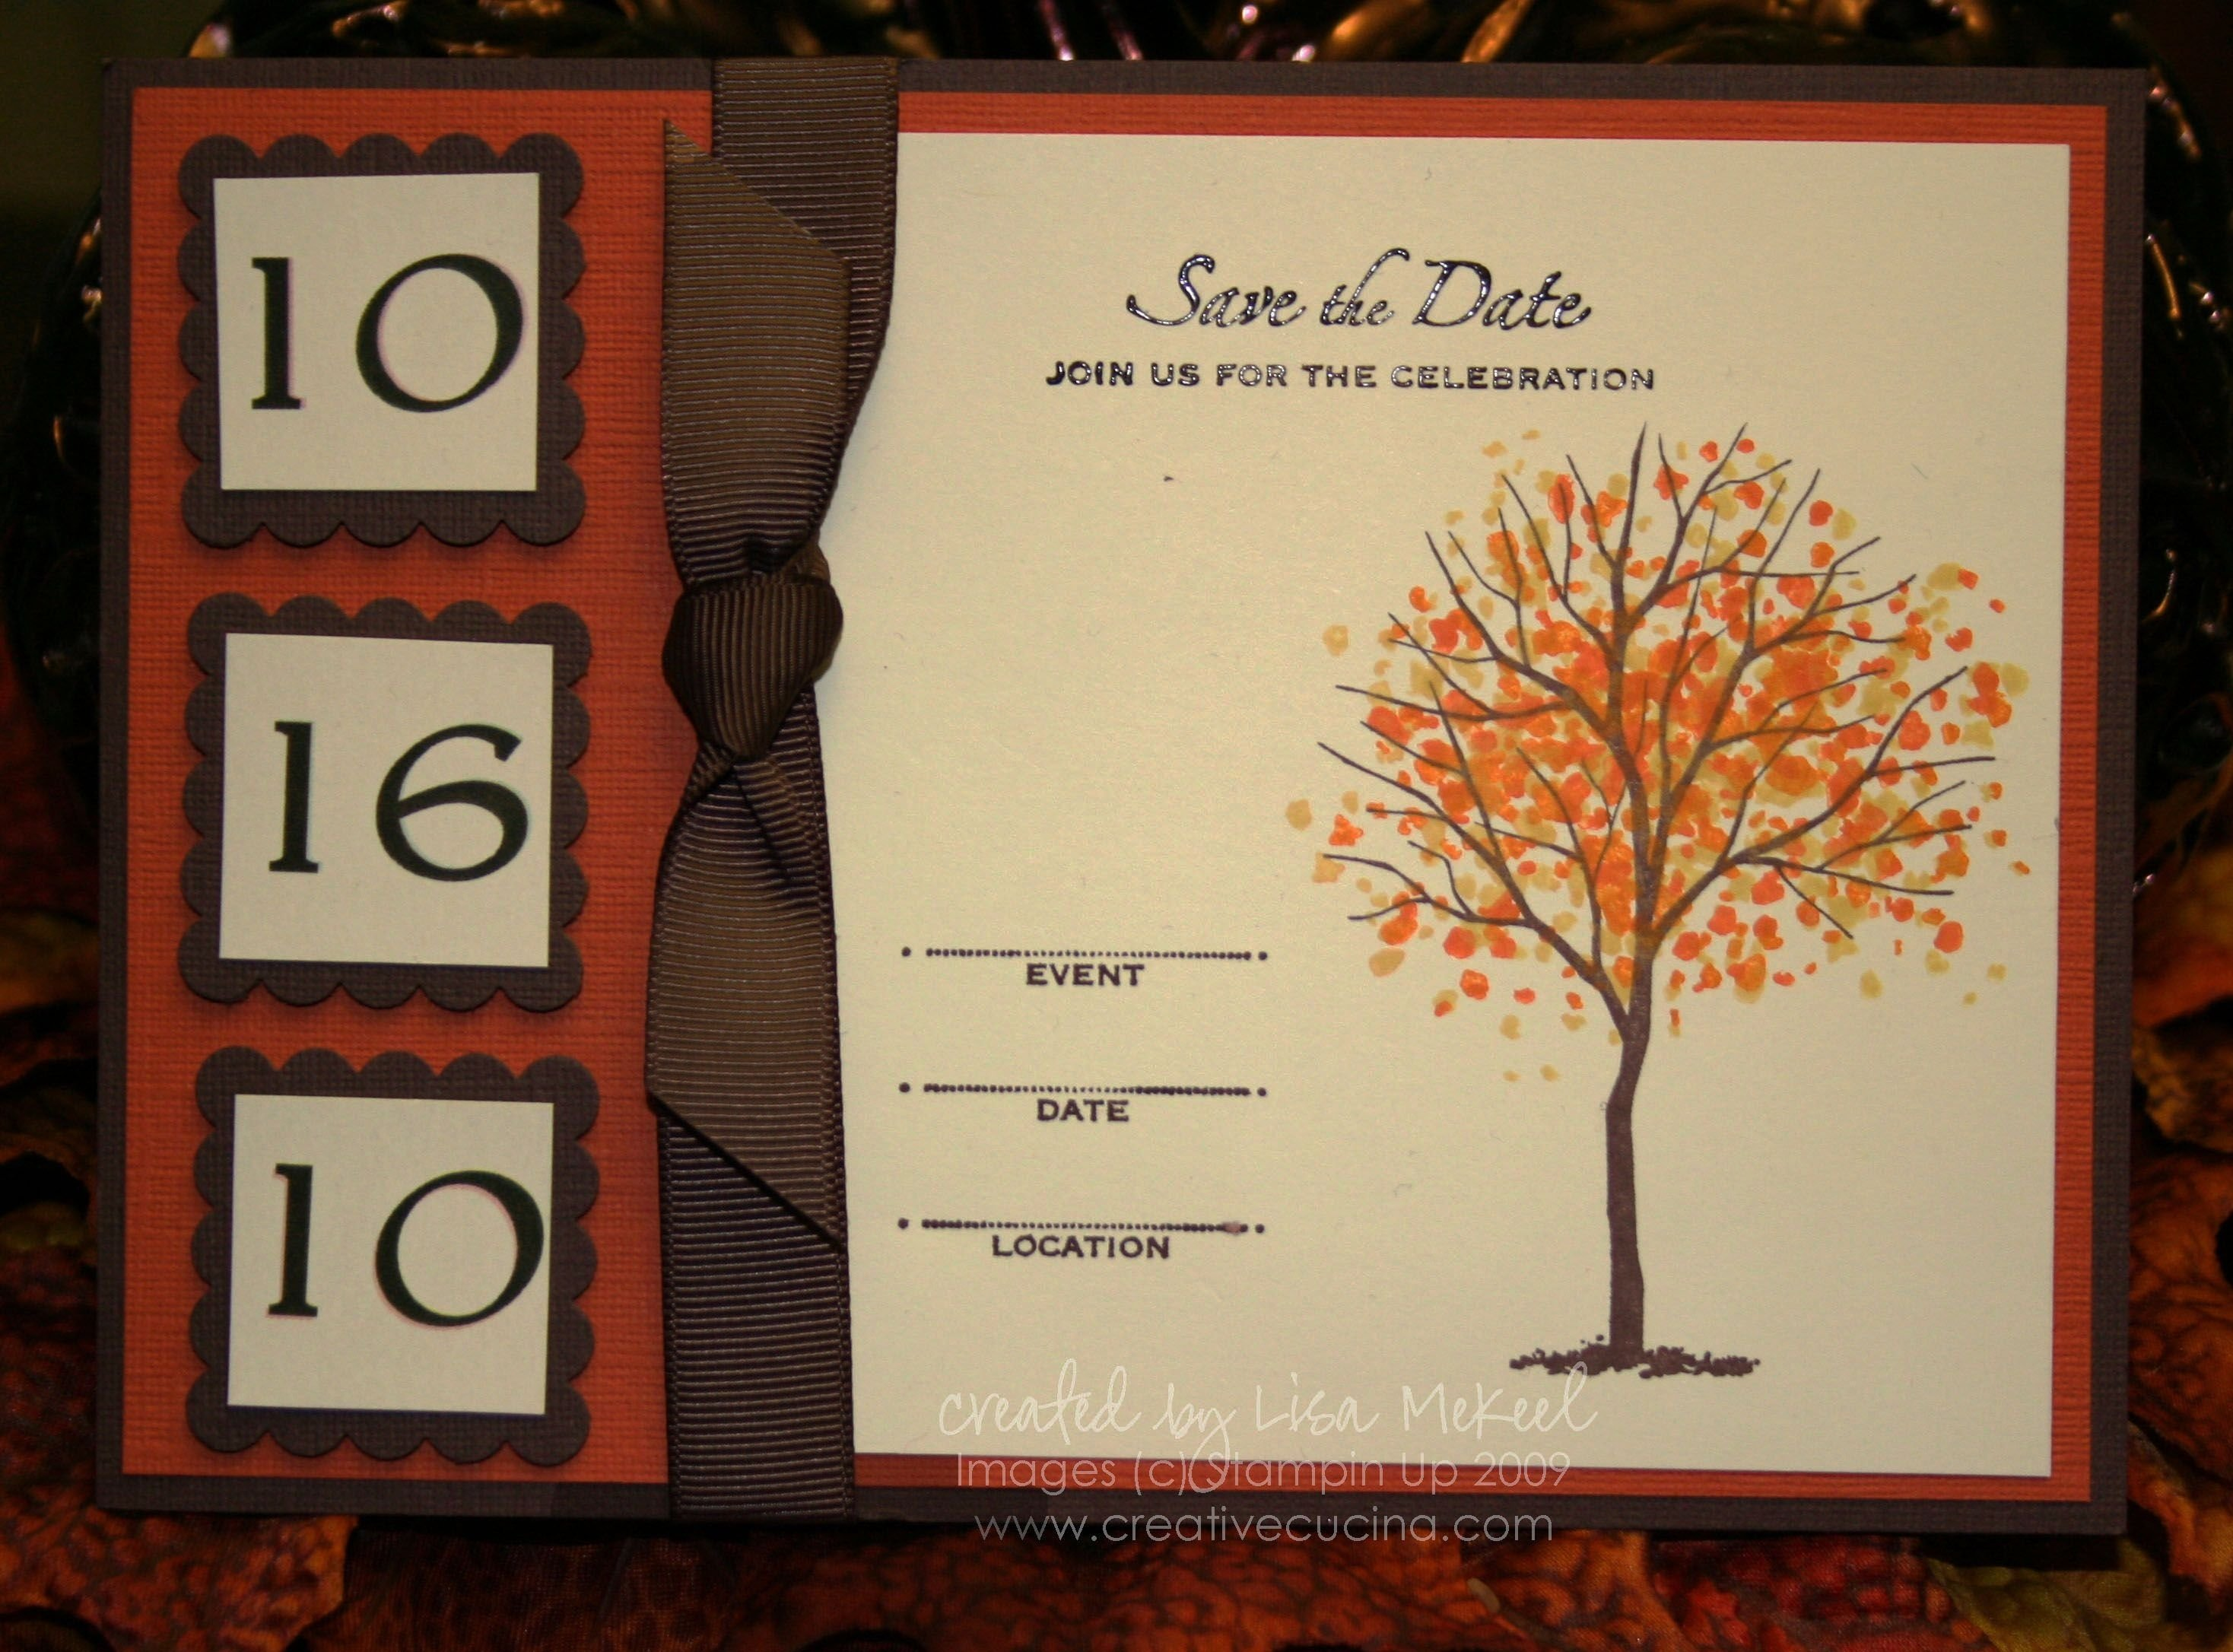 10 Attractive Creative Save The Date Ideas fall leaf pocket wedding invitations fall autumn wedding save the 1 2020